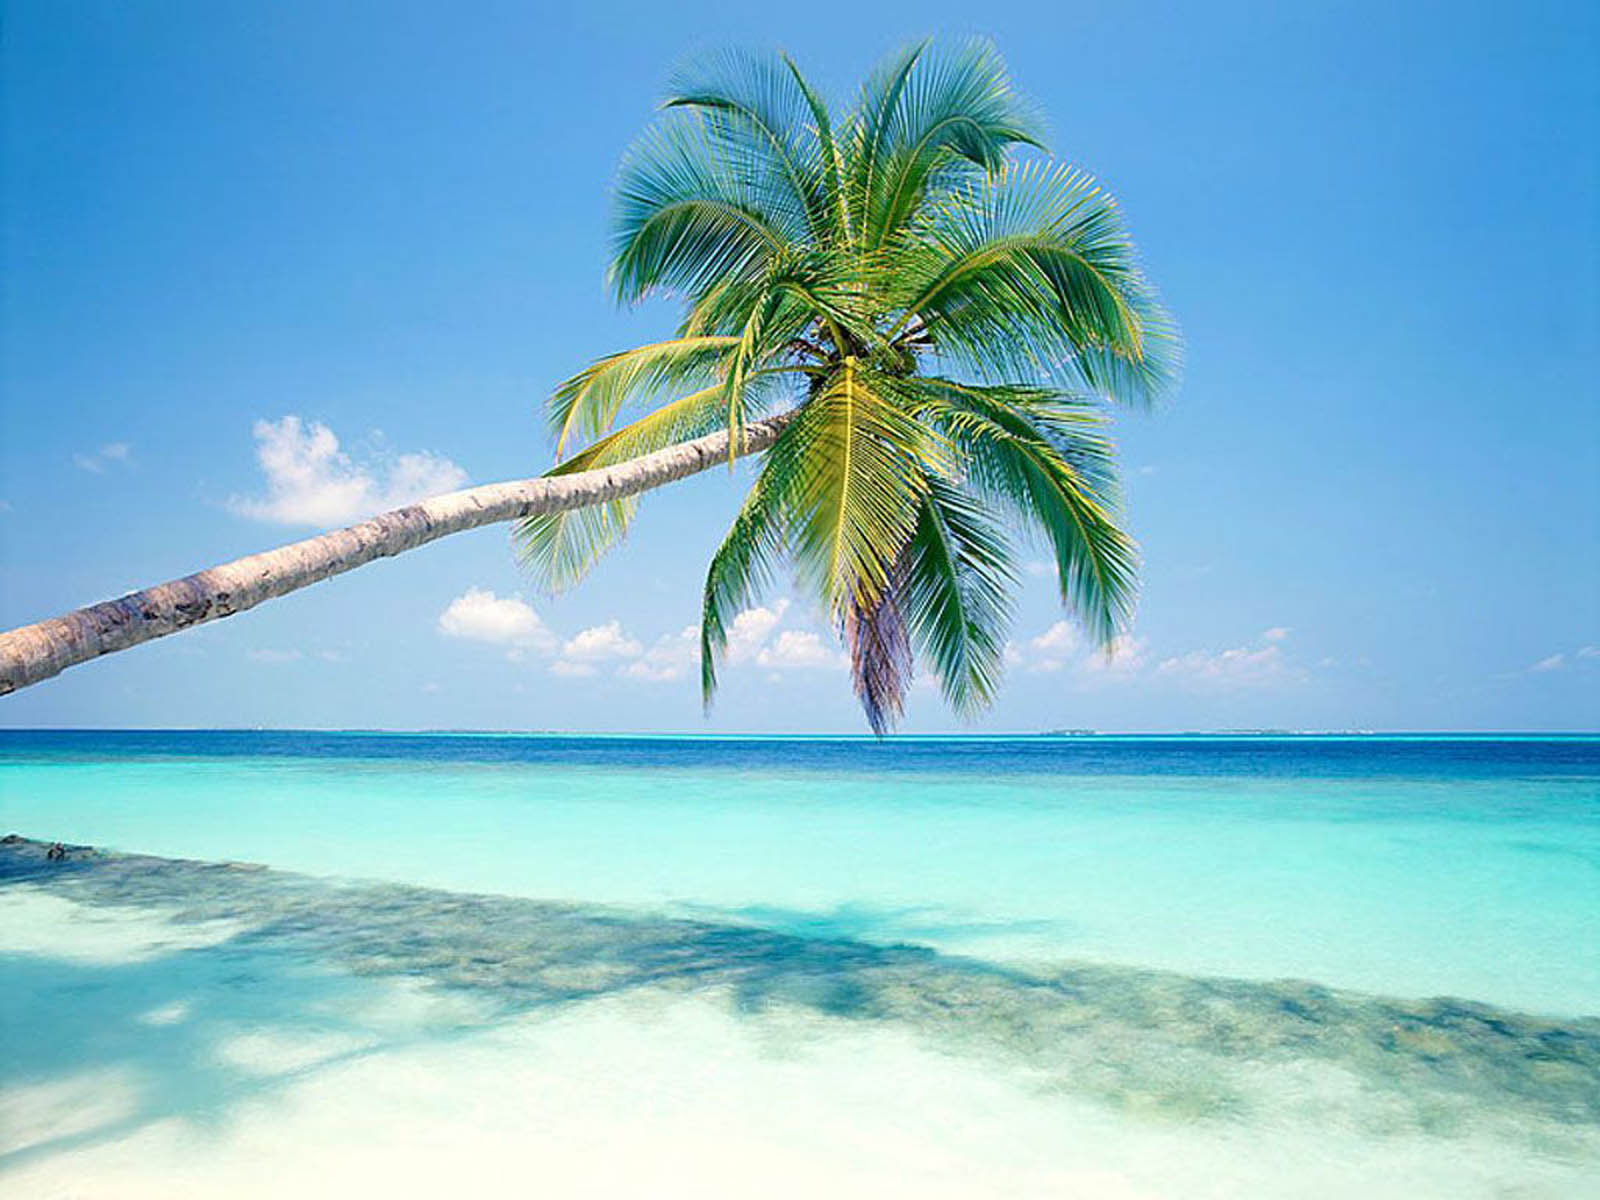 wallpaper Palm Trees Wallpapers 1600x1200